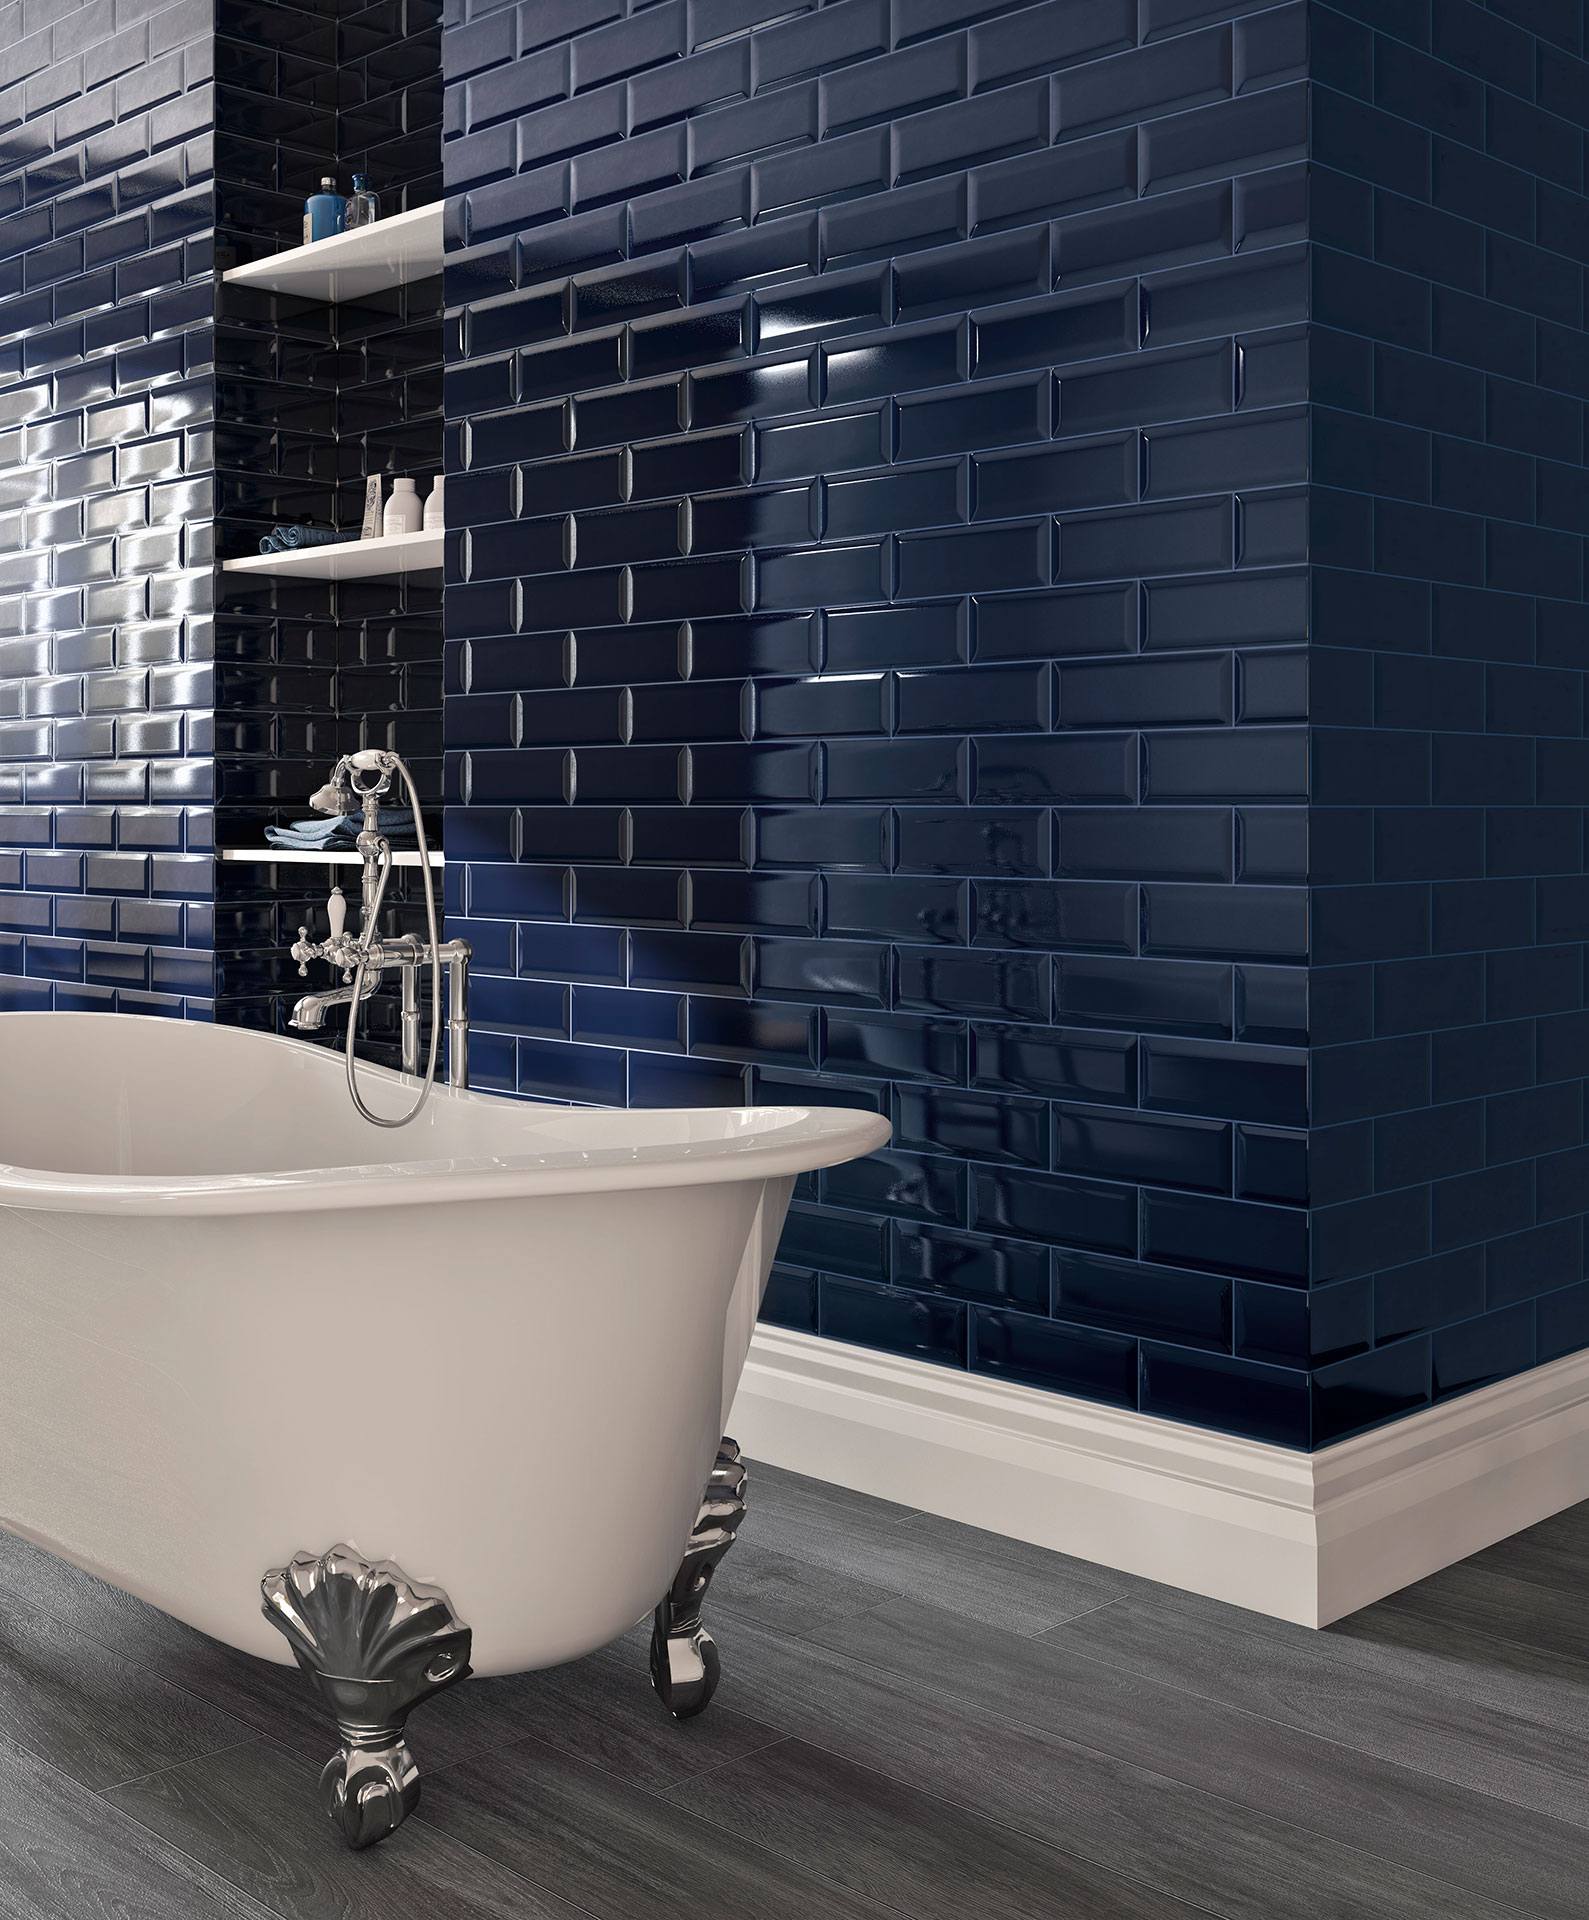 Adamas kitchen and bathroom tiles: new horizons for high-tech ceramics